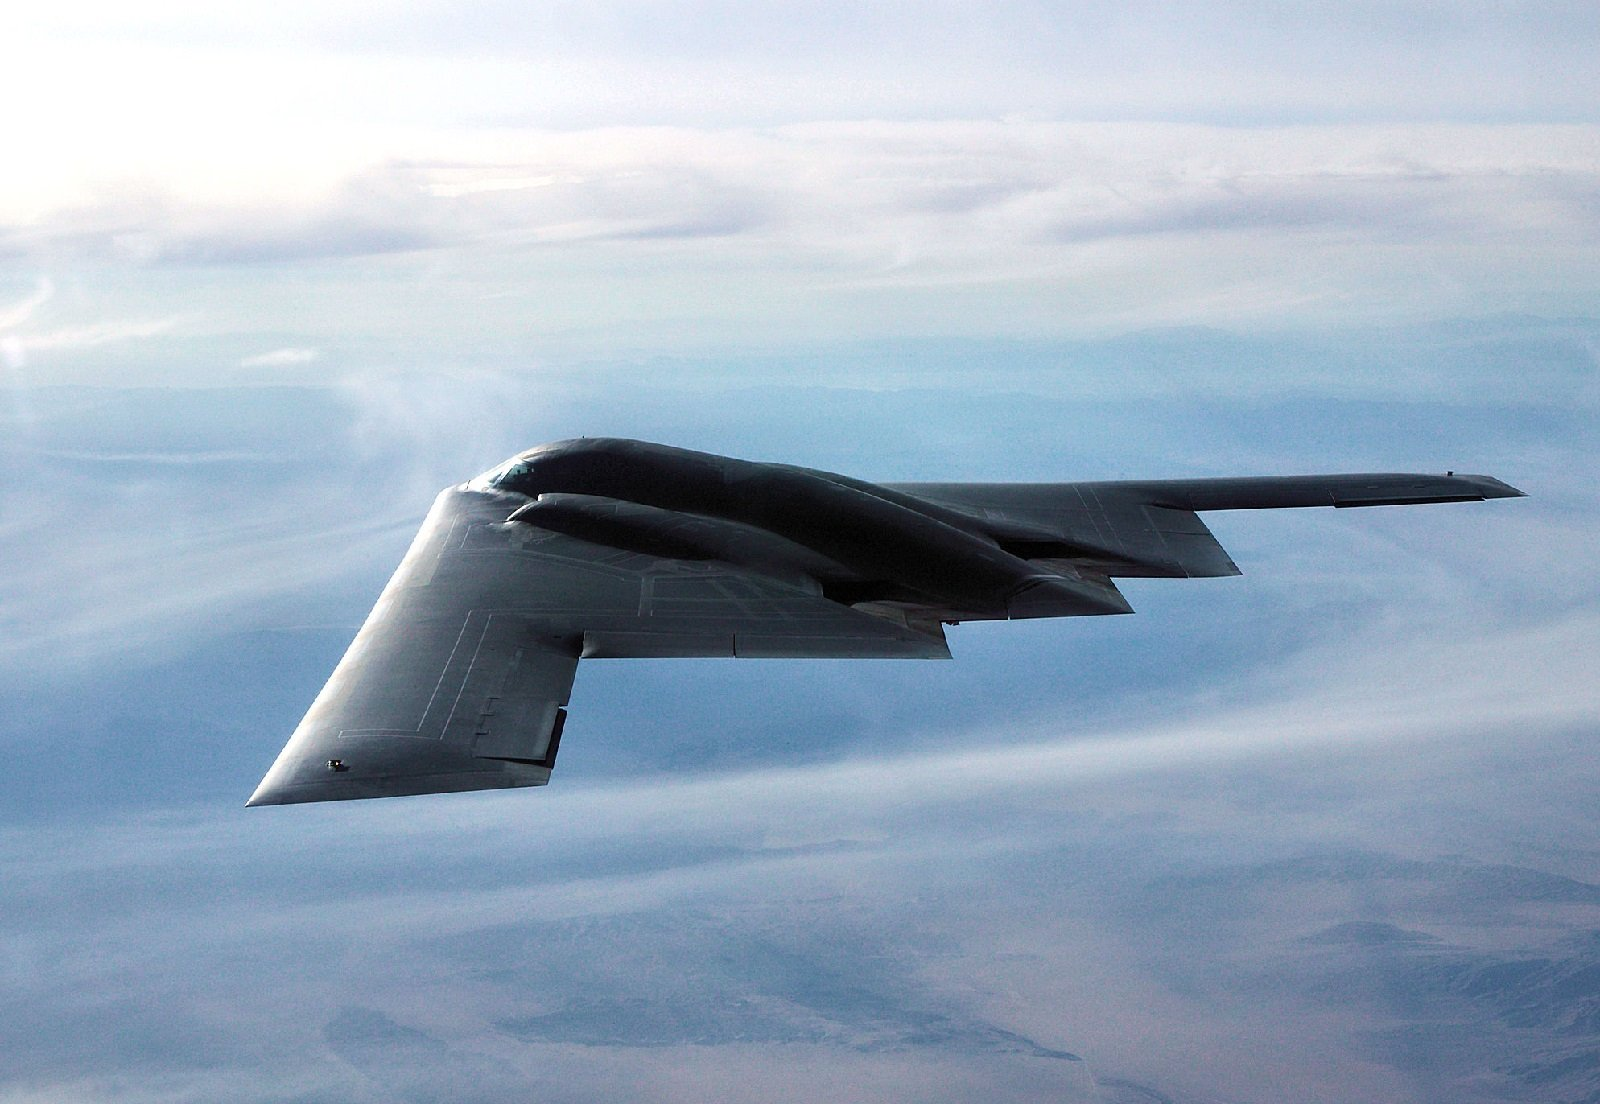 Take It From a B-2 Stealth Bomber Pilot: No Aircraft On the Planet Can Match It